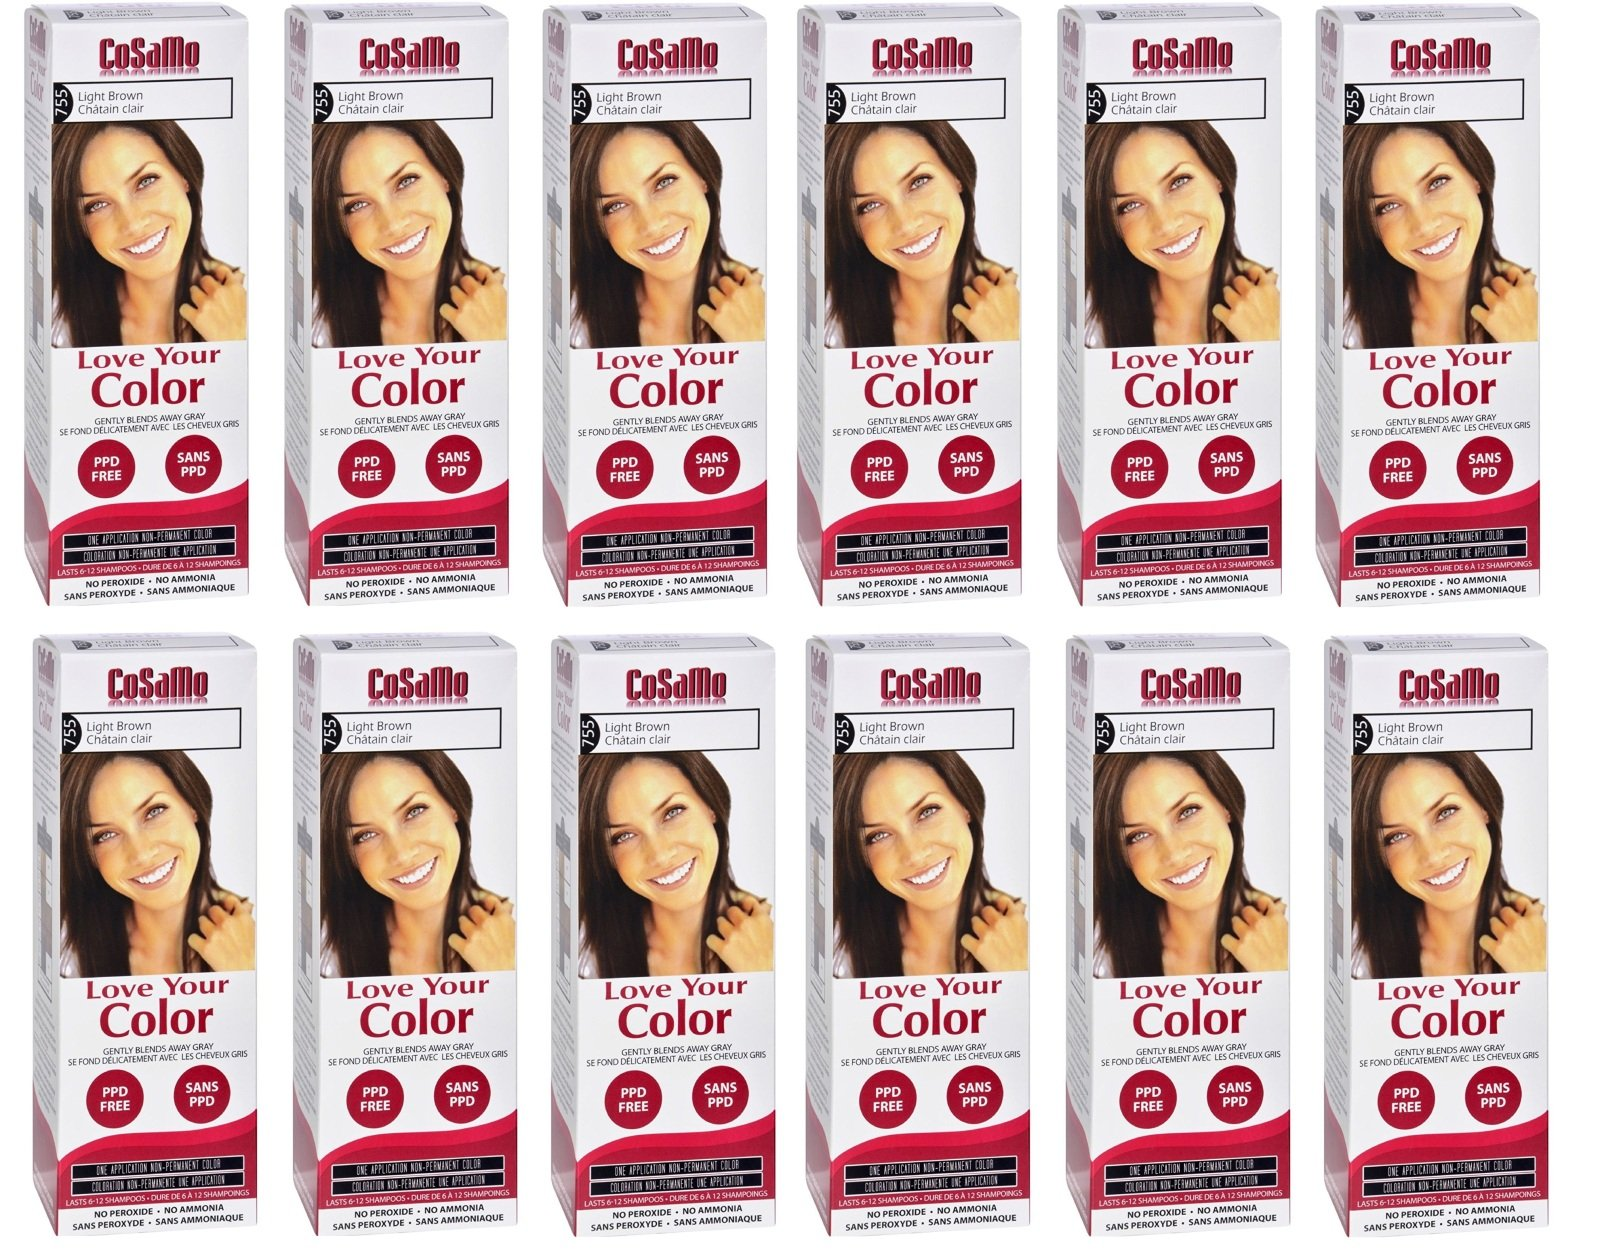 CoSaMo - Love Your Color Non-Permanent Hair Color 755 Light Brown - 3 Oz (Pack of 12) + FREE Assorted Purse Kit/Cosmetic Bag Bonus Gift